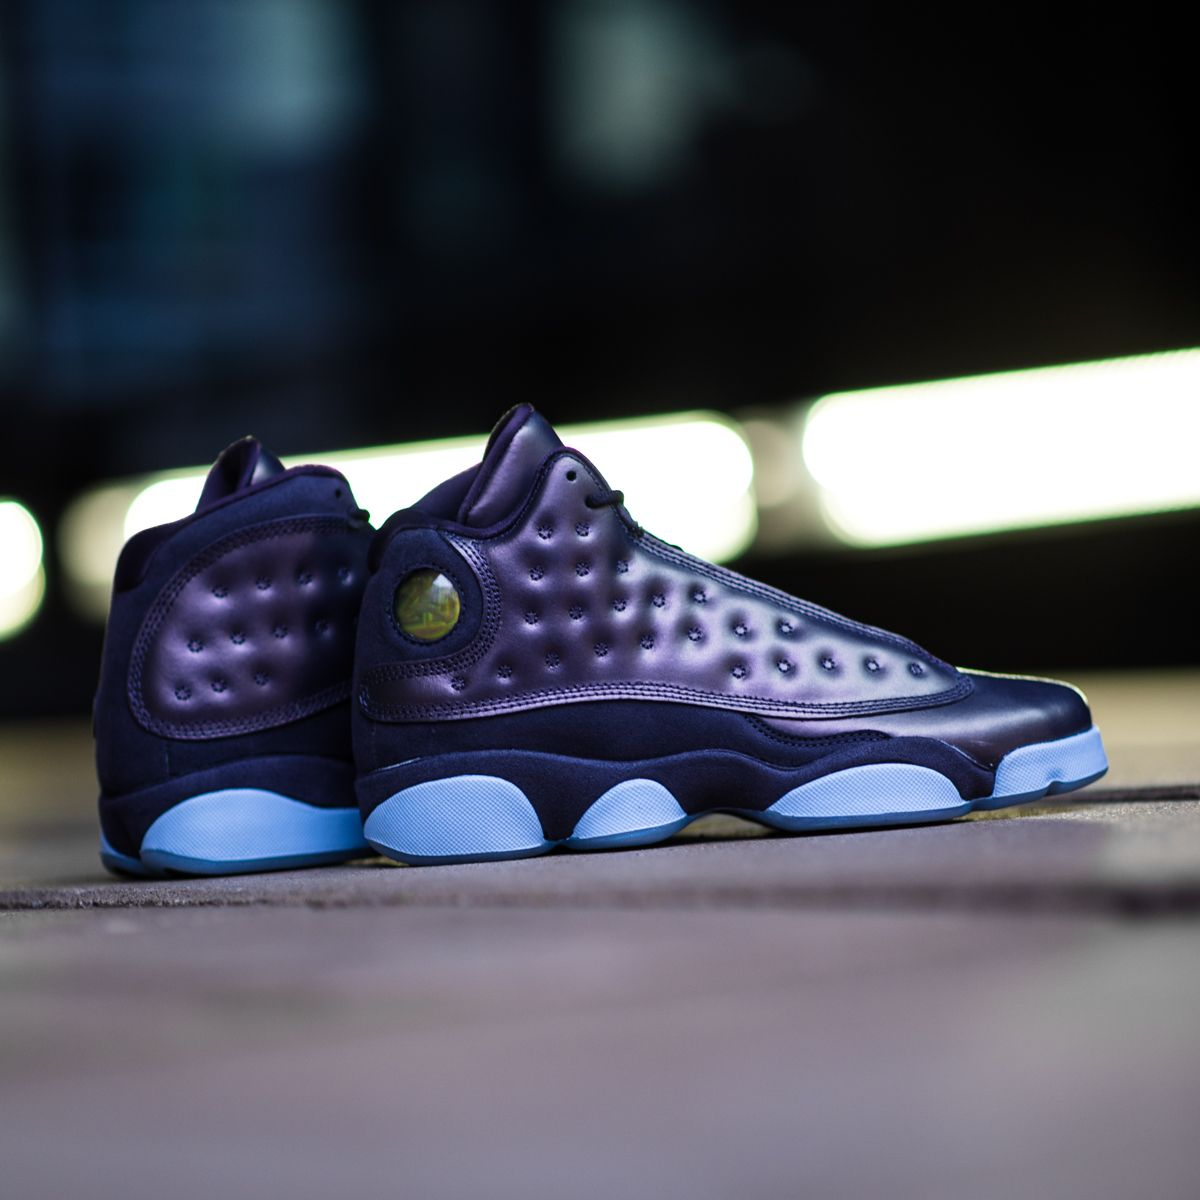 pretty nice 864c3 19b43 Ladies, here s something special for you! The super shiny Air Jordan 13 HC  Dark  Raisin  is now available on KICKZ.com!